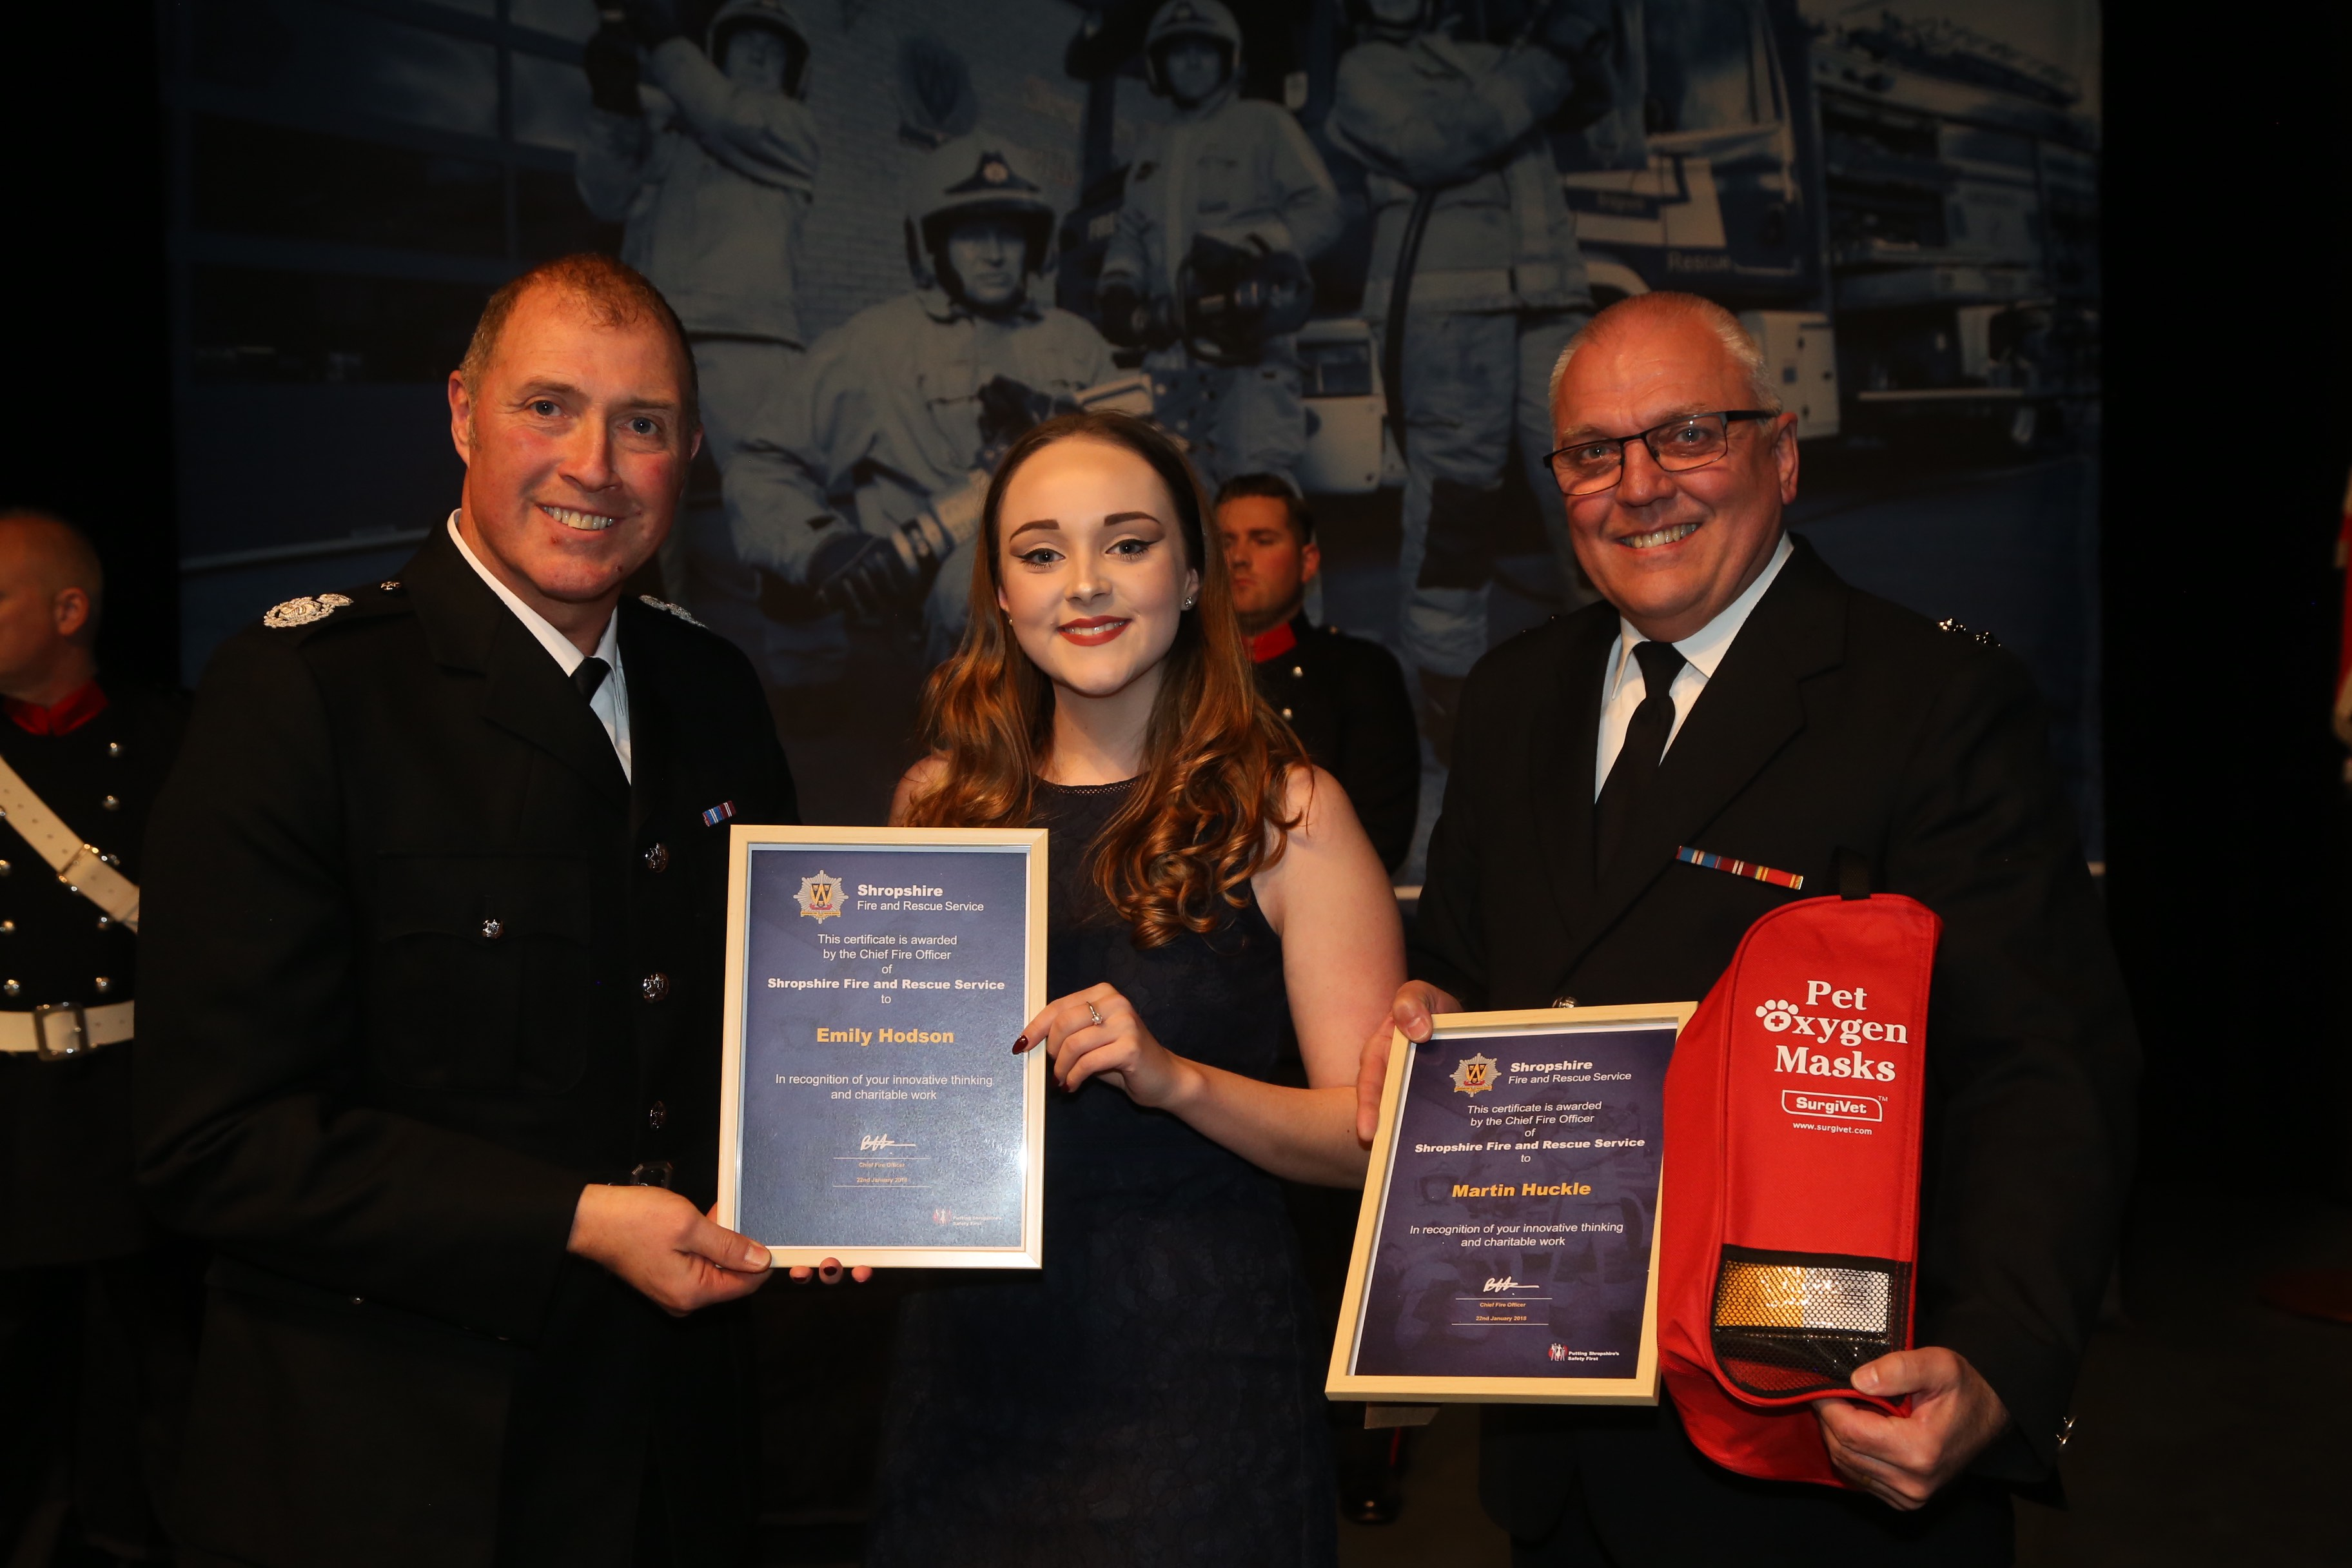 Emily Hodson and Martin Huckle are praised for their innovative thinking and charitable work in raising funds for pet oxygen masks for Shropshire fire stations